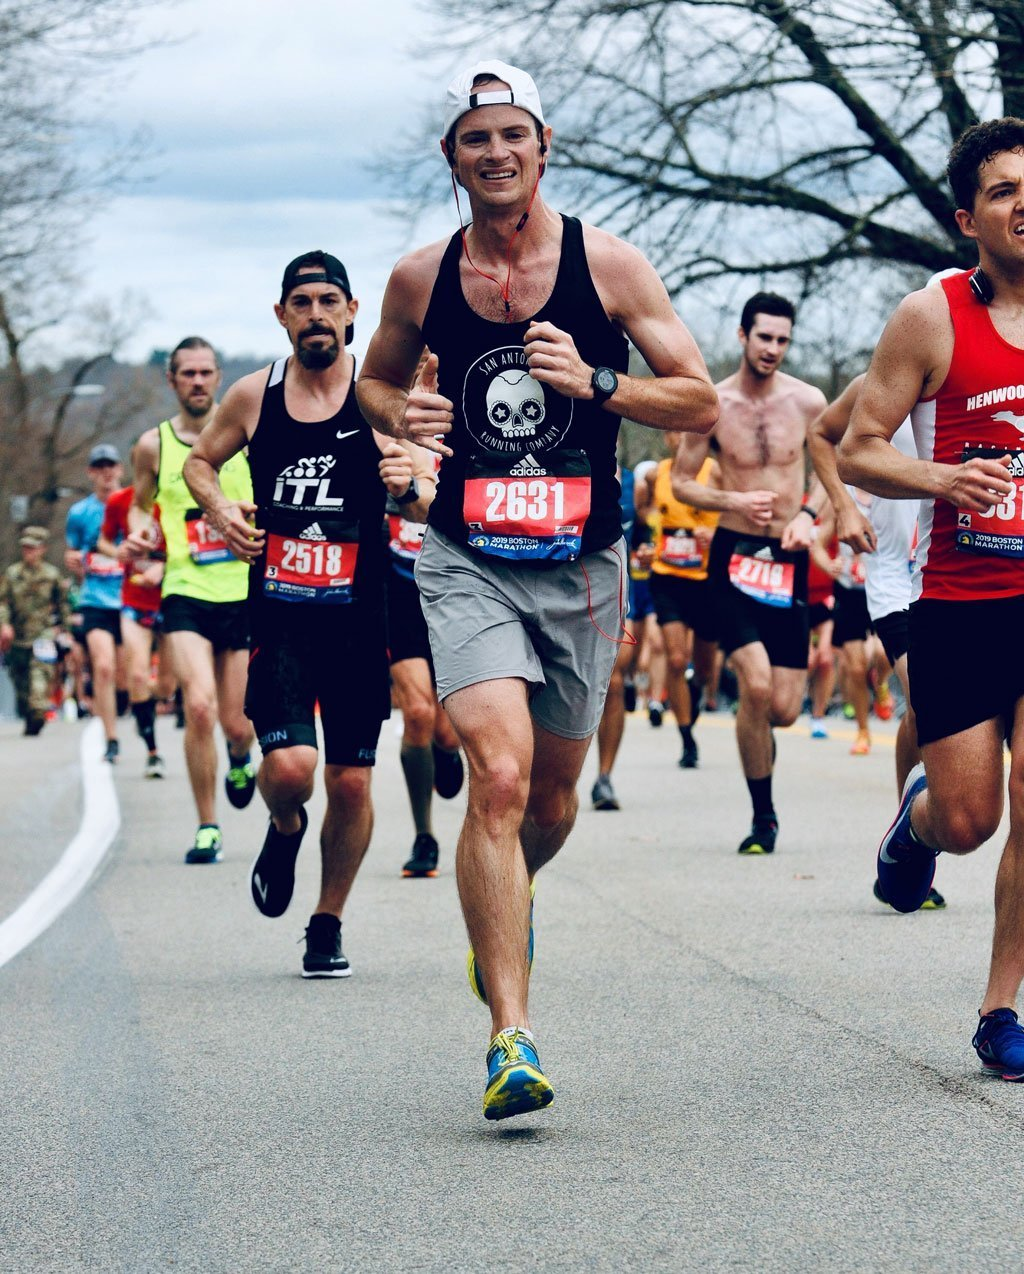 Andy hooks running a marathon race on Extramilest podcast